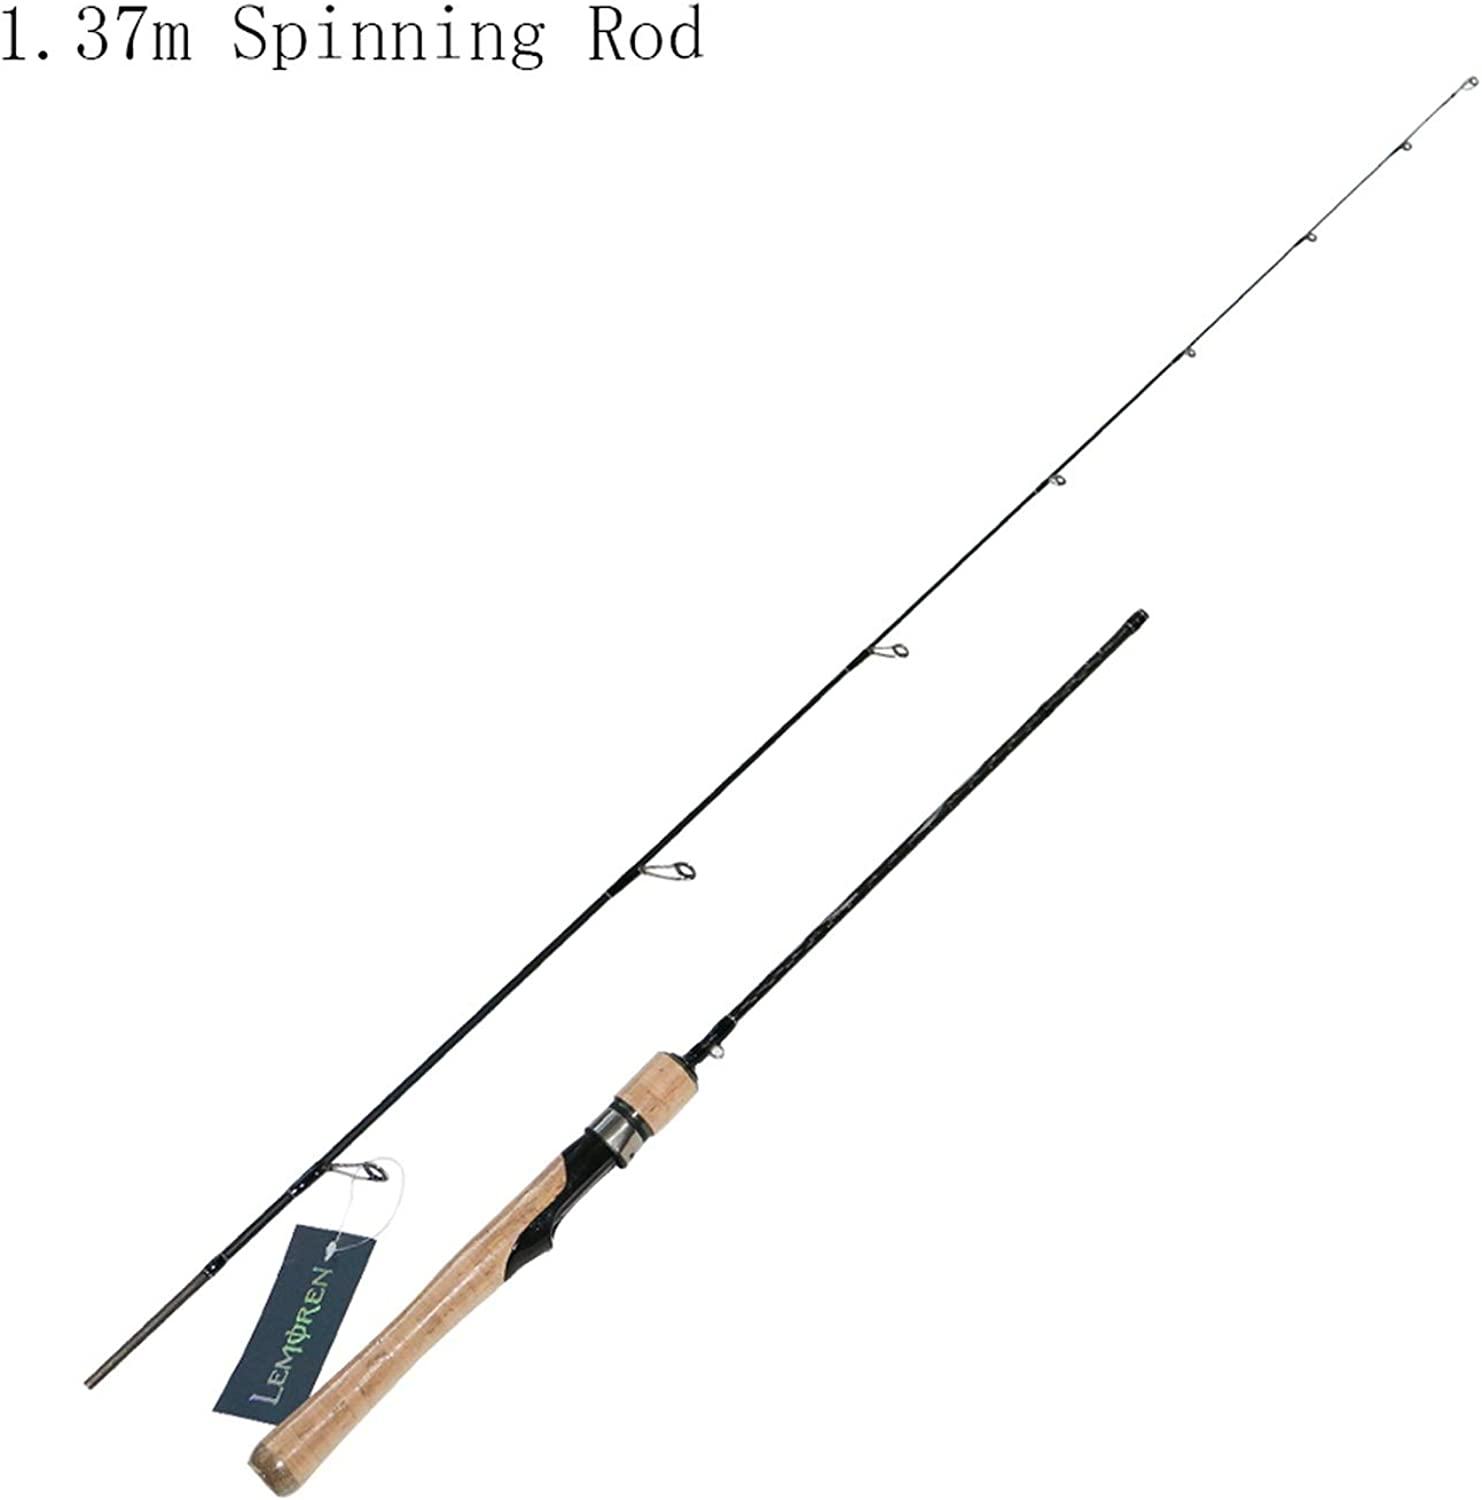 Spinning Rod Solid Tip Fast Action Carbon Rod for Light Jigging Fishing Rod Portable Carbon Sea Lake Casting Fishing Lure Rod